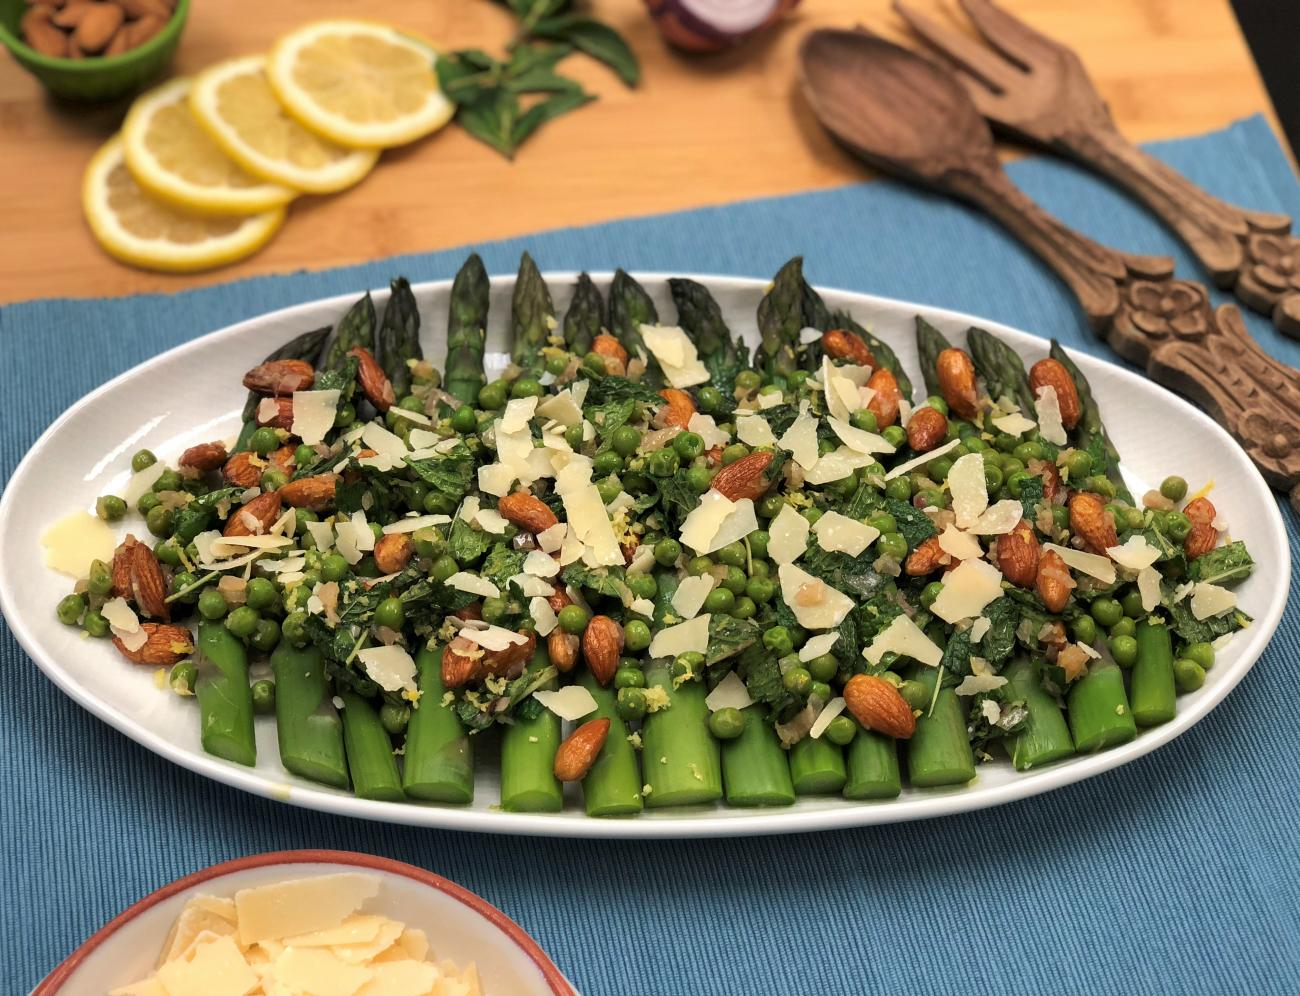 Recipe for Lemony Asparagus and Spring Pea Salad with Roasted Almonds